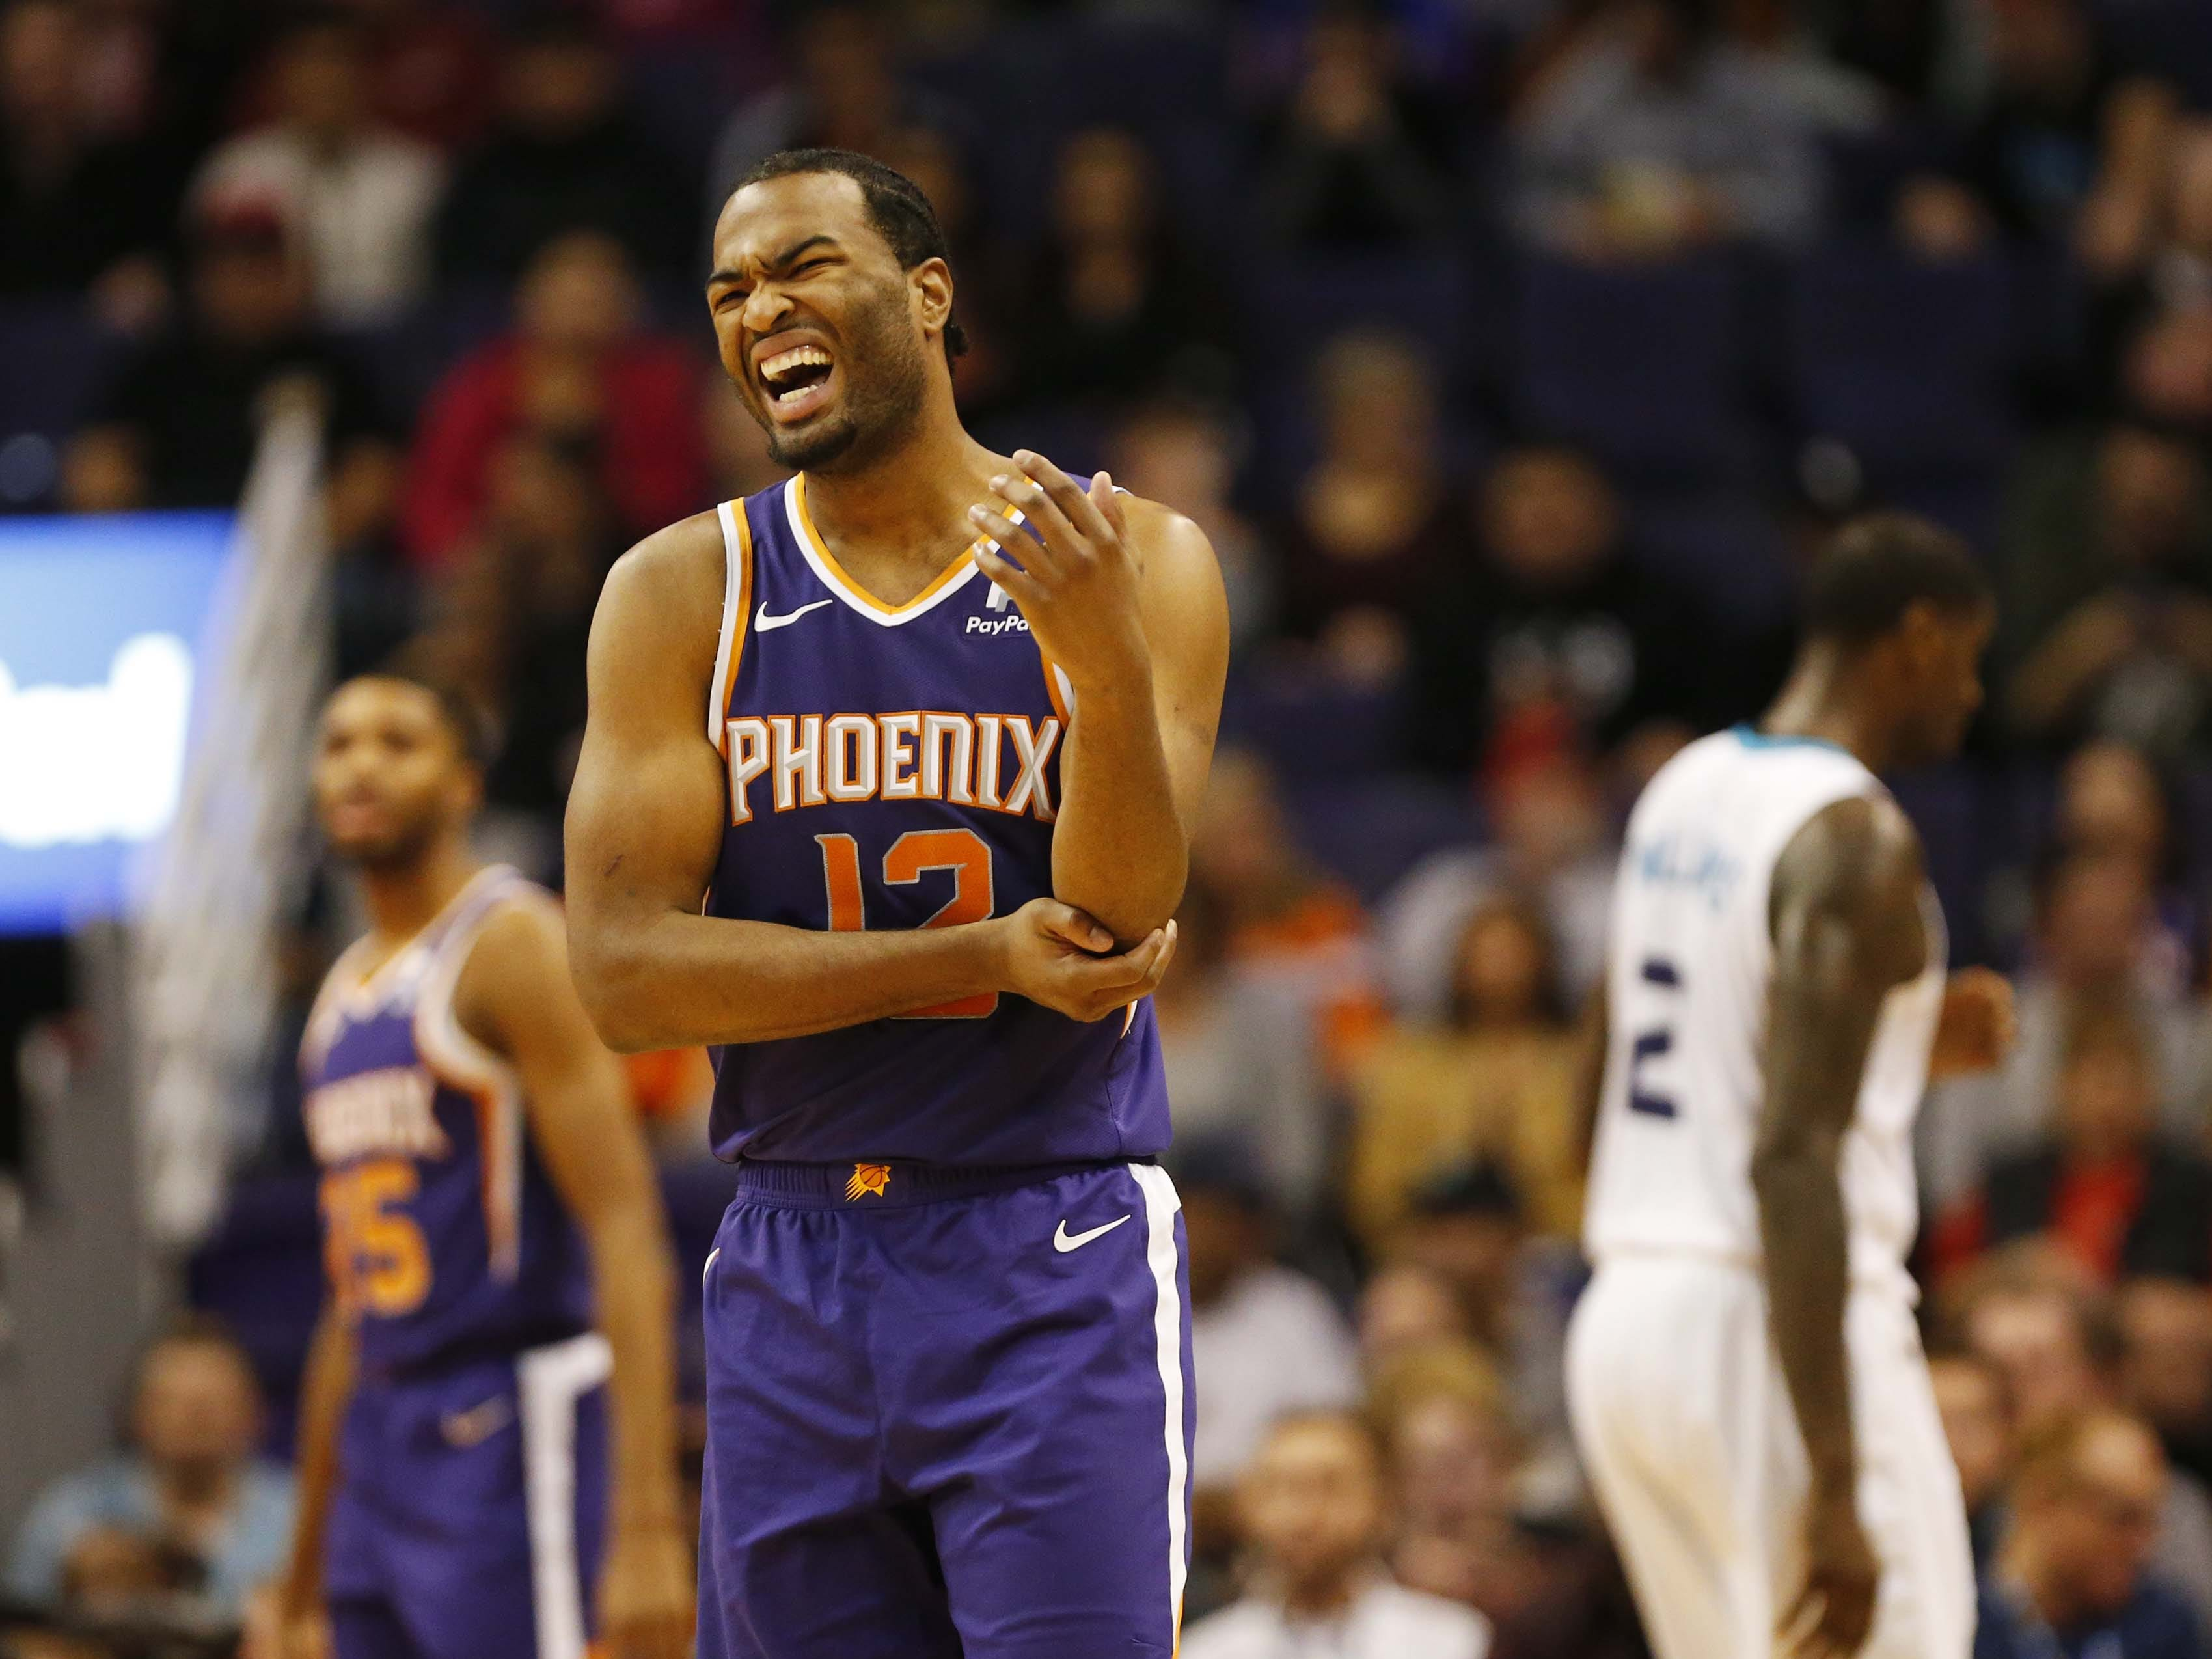 Phoenix Suns forward T.J. Warren (12) grabs his arm during the second quarter against the Charlotte Hornets in Phoenix January 6, 2019.